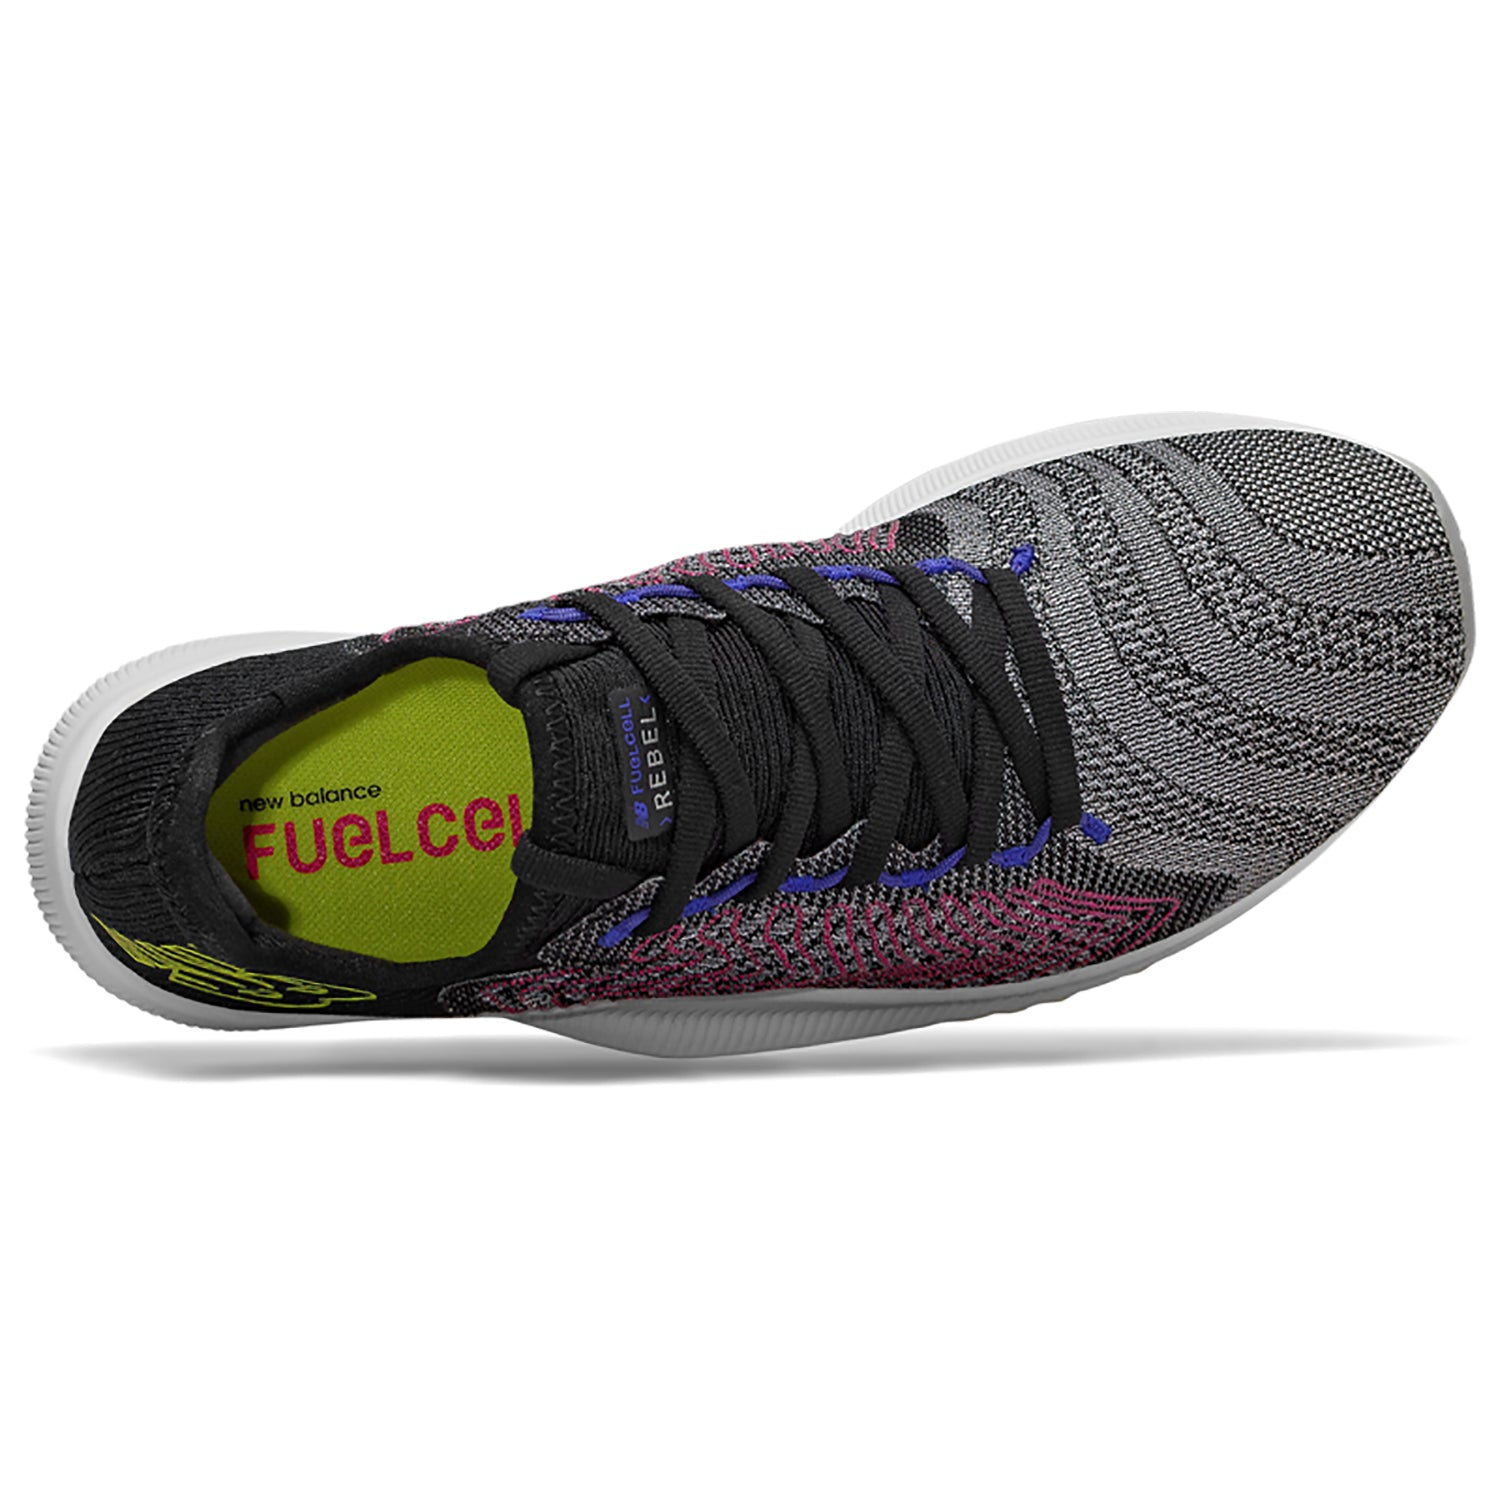 f68421b482e6b Women's Fuelcell Rebel Running Shoes - Black/Multicolor – Gazelle Sports